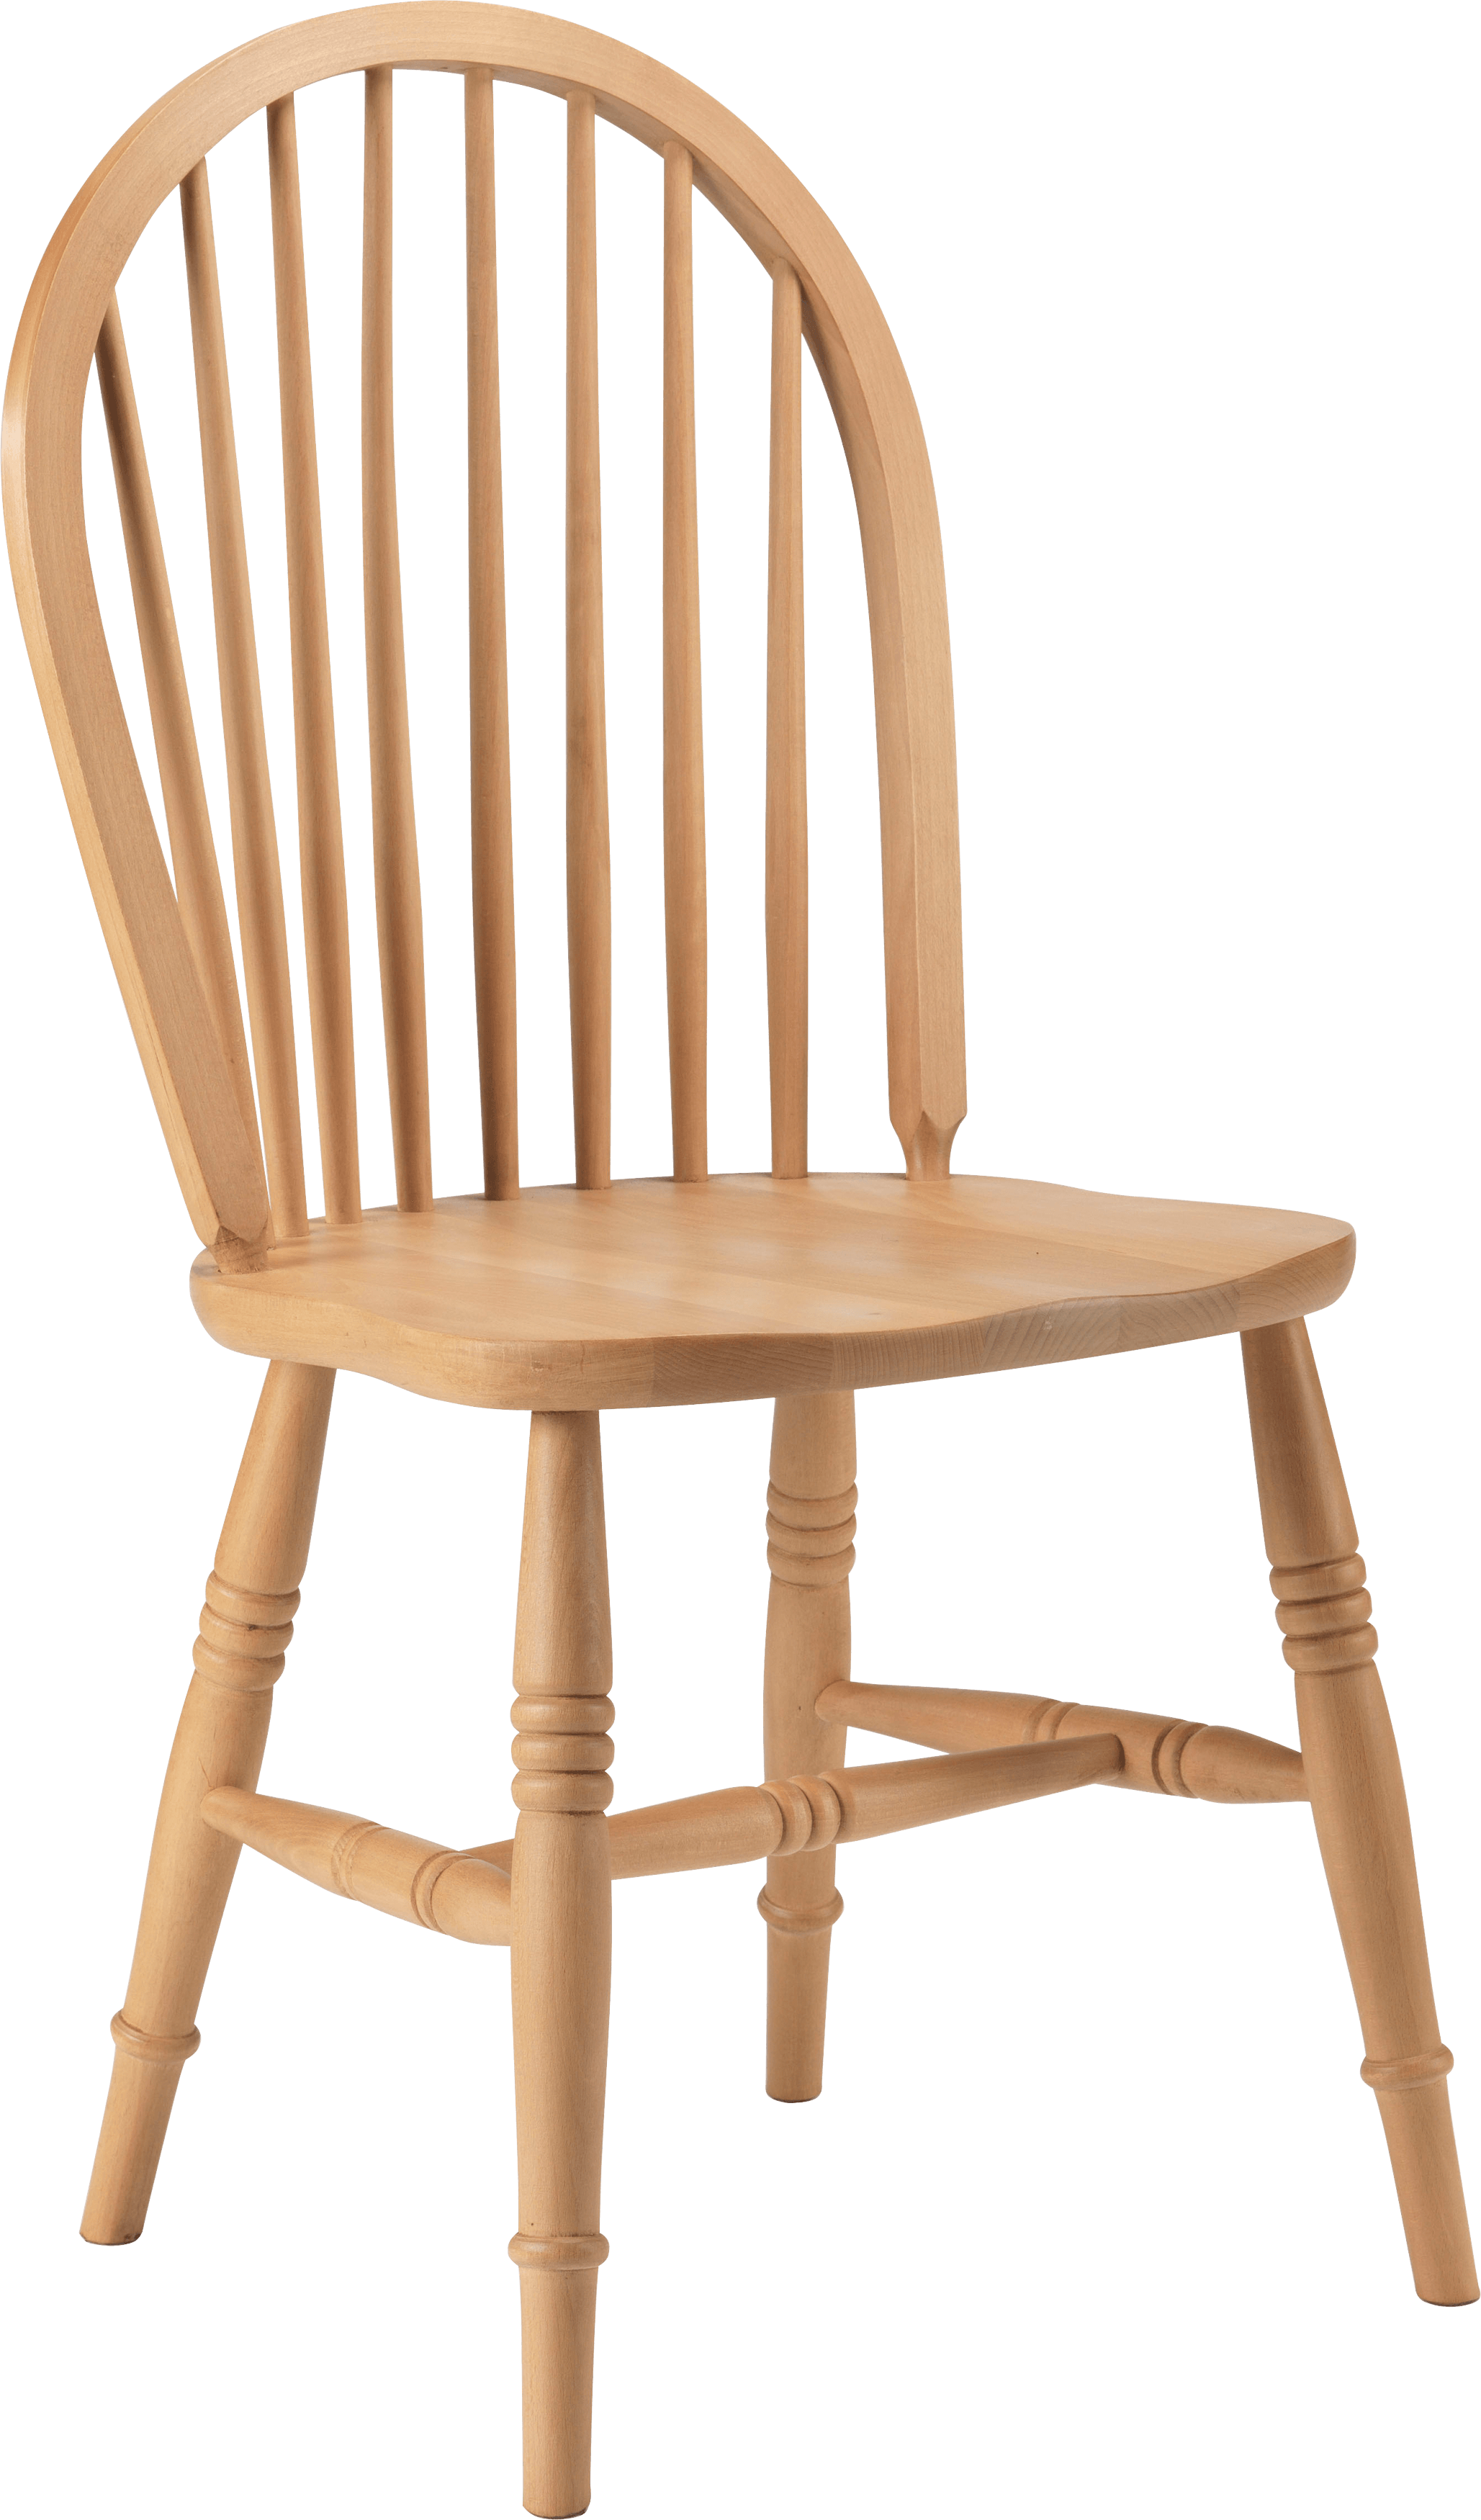 Chair Png Image PNG Image